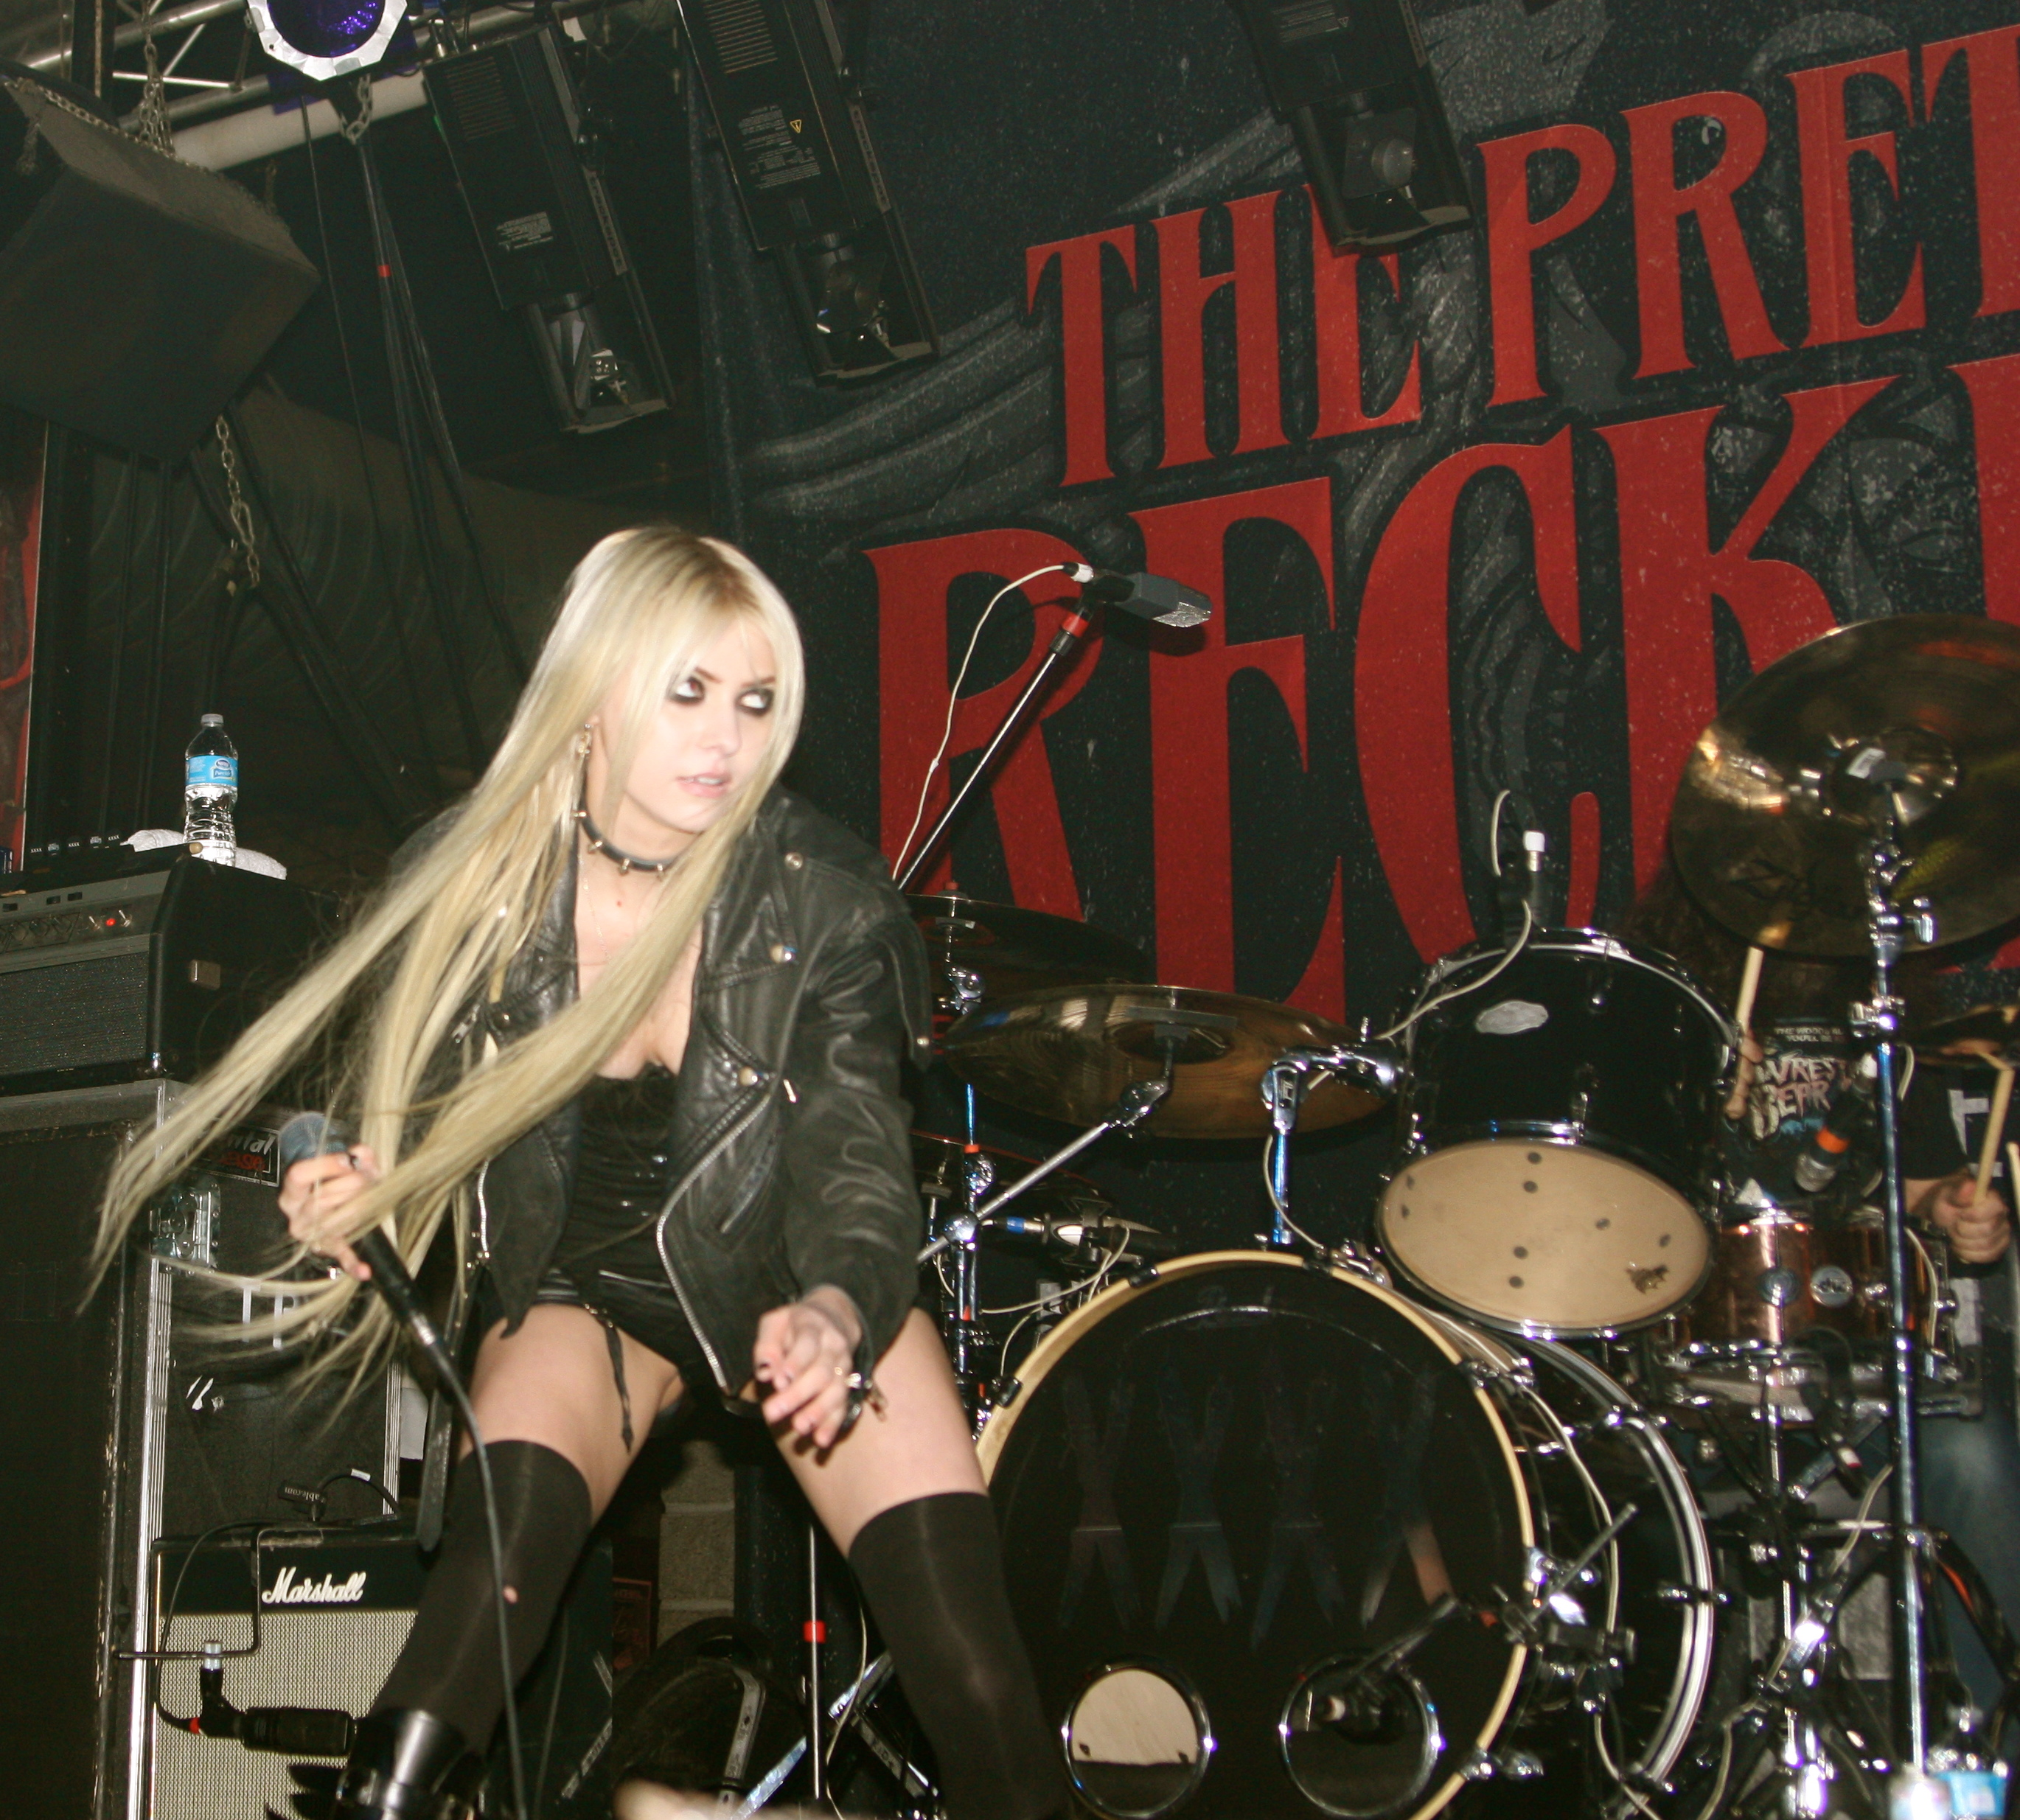 Backstage with Taylor Momsen of The Pretty Reckless